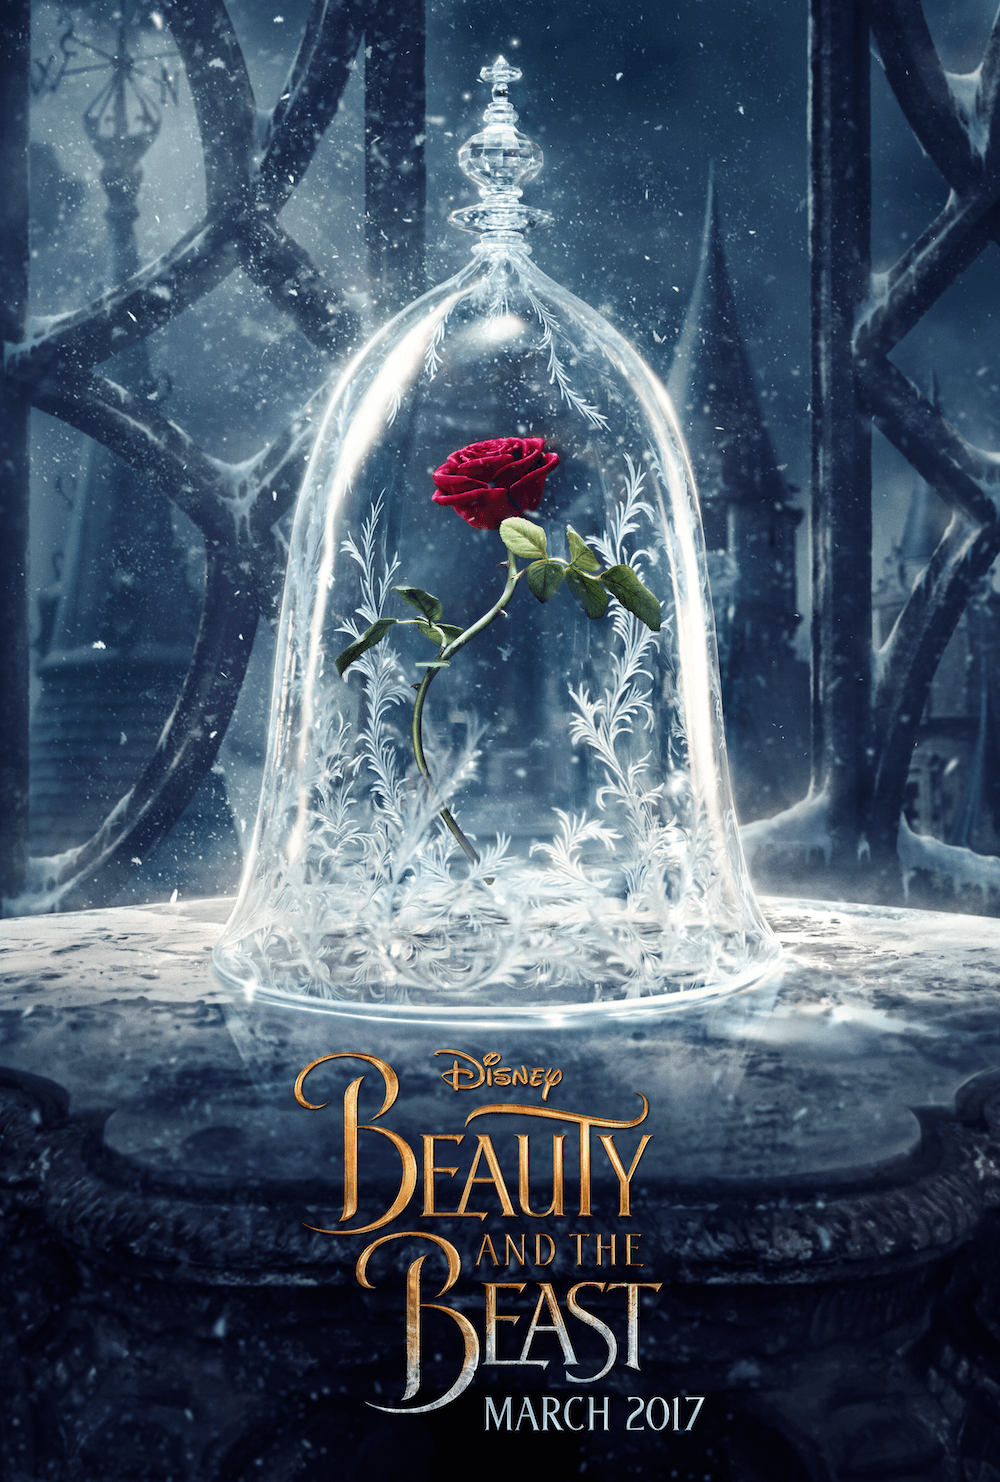 Beauty The Beast Poster Design Not So Enchanted Rose